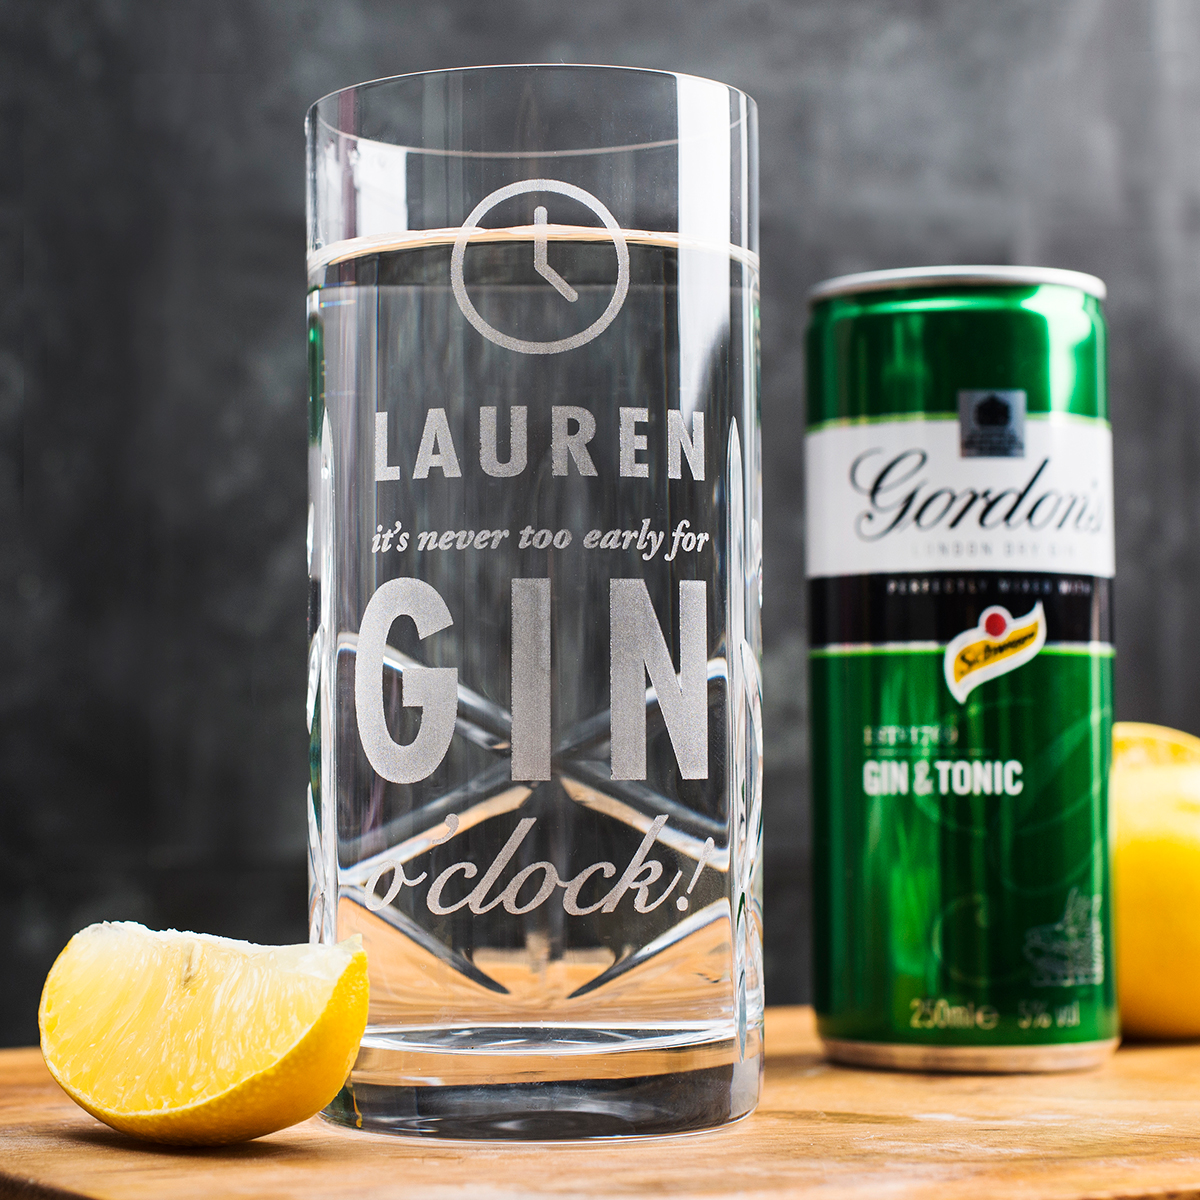 Engraved Crystal Highball Glass With Gordons G&T Mixer  Gin OClock